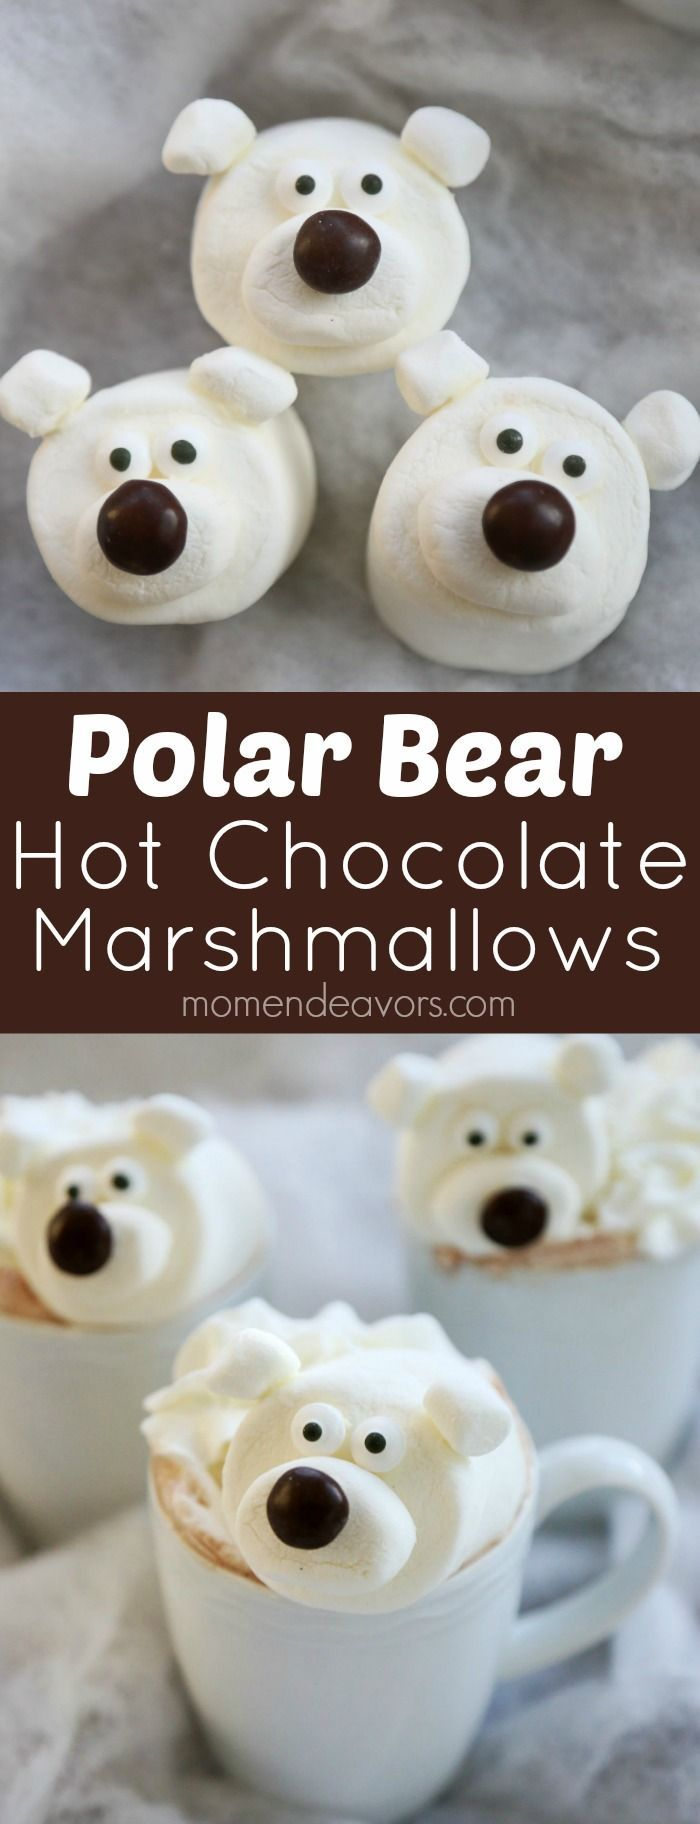 Kids will LOVE polar bear hot chocolate!!! So fun & easy to make - the boys will seriously flip over this!